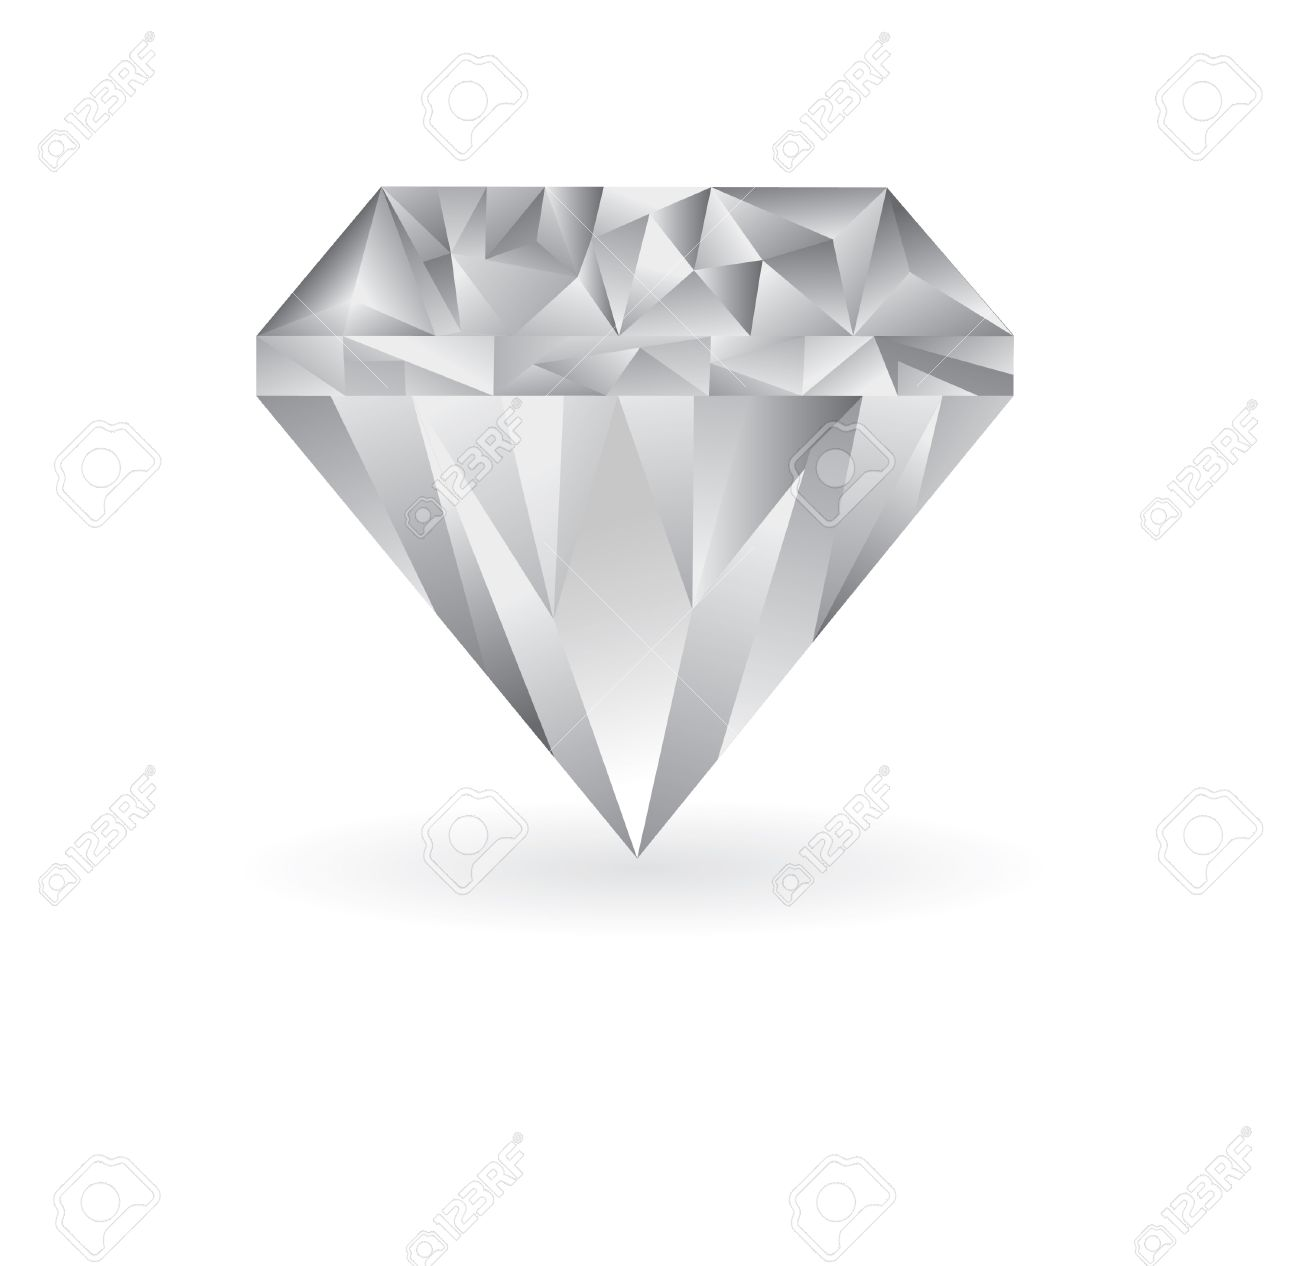 Cool white background - Cool Diamond Illustration On A White Background Stock Vector 6688160